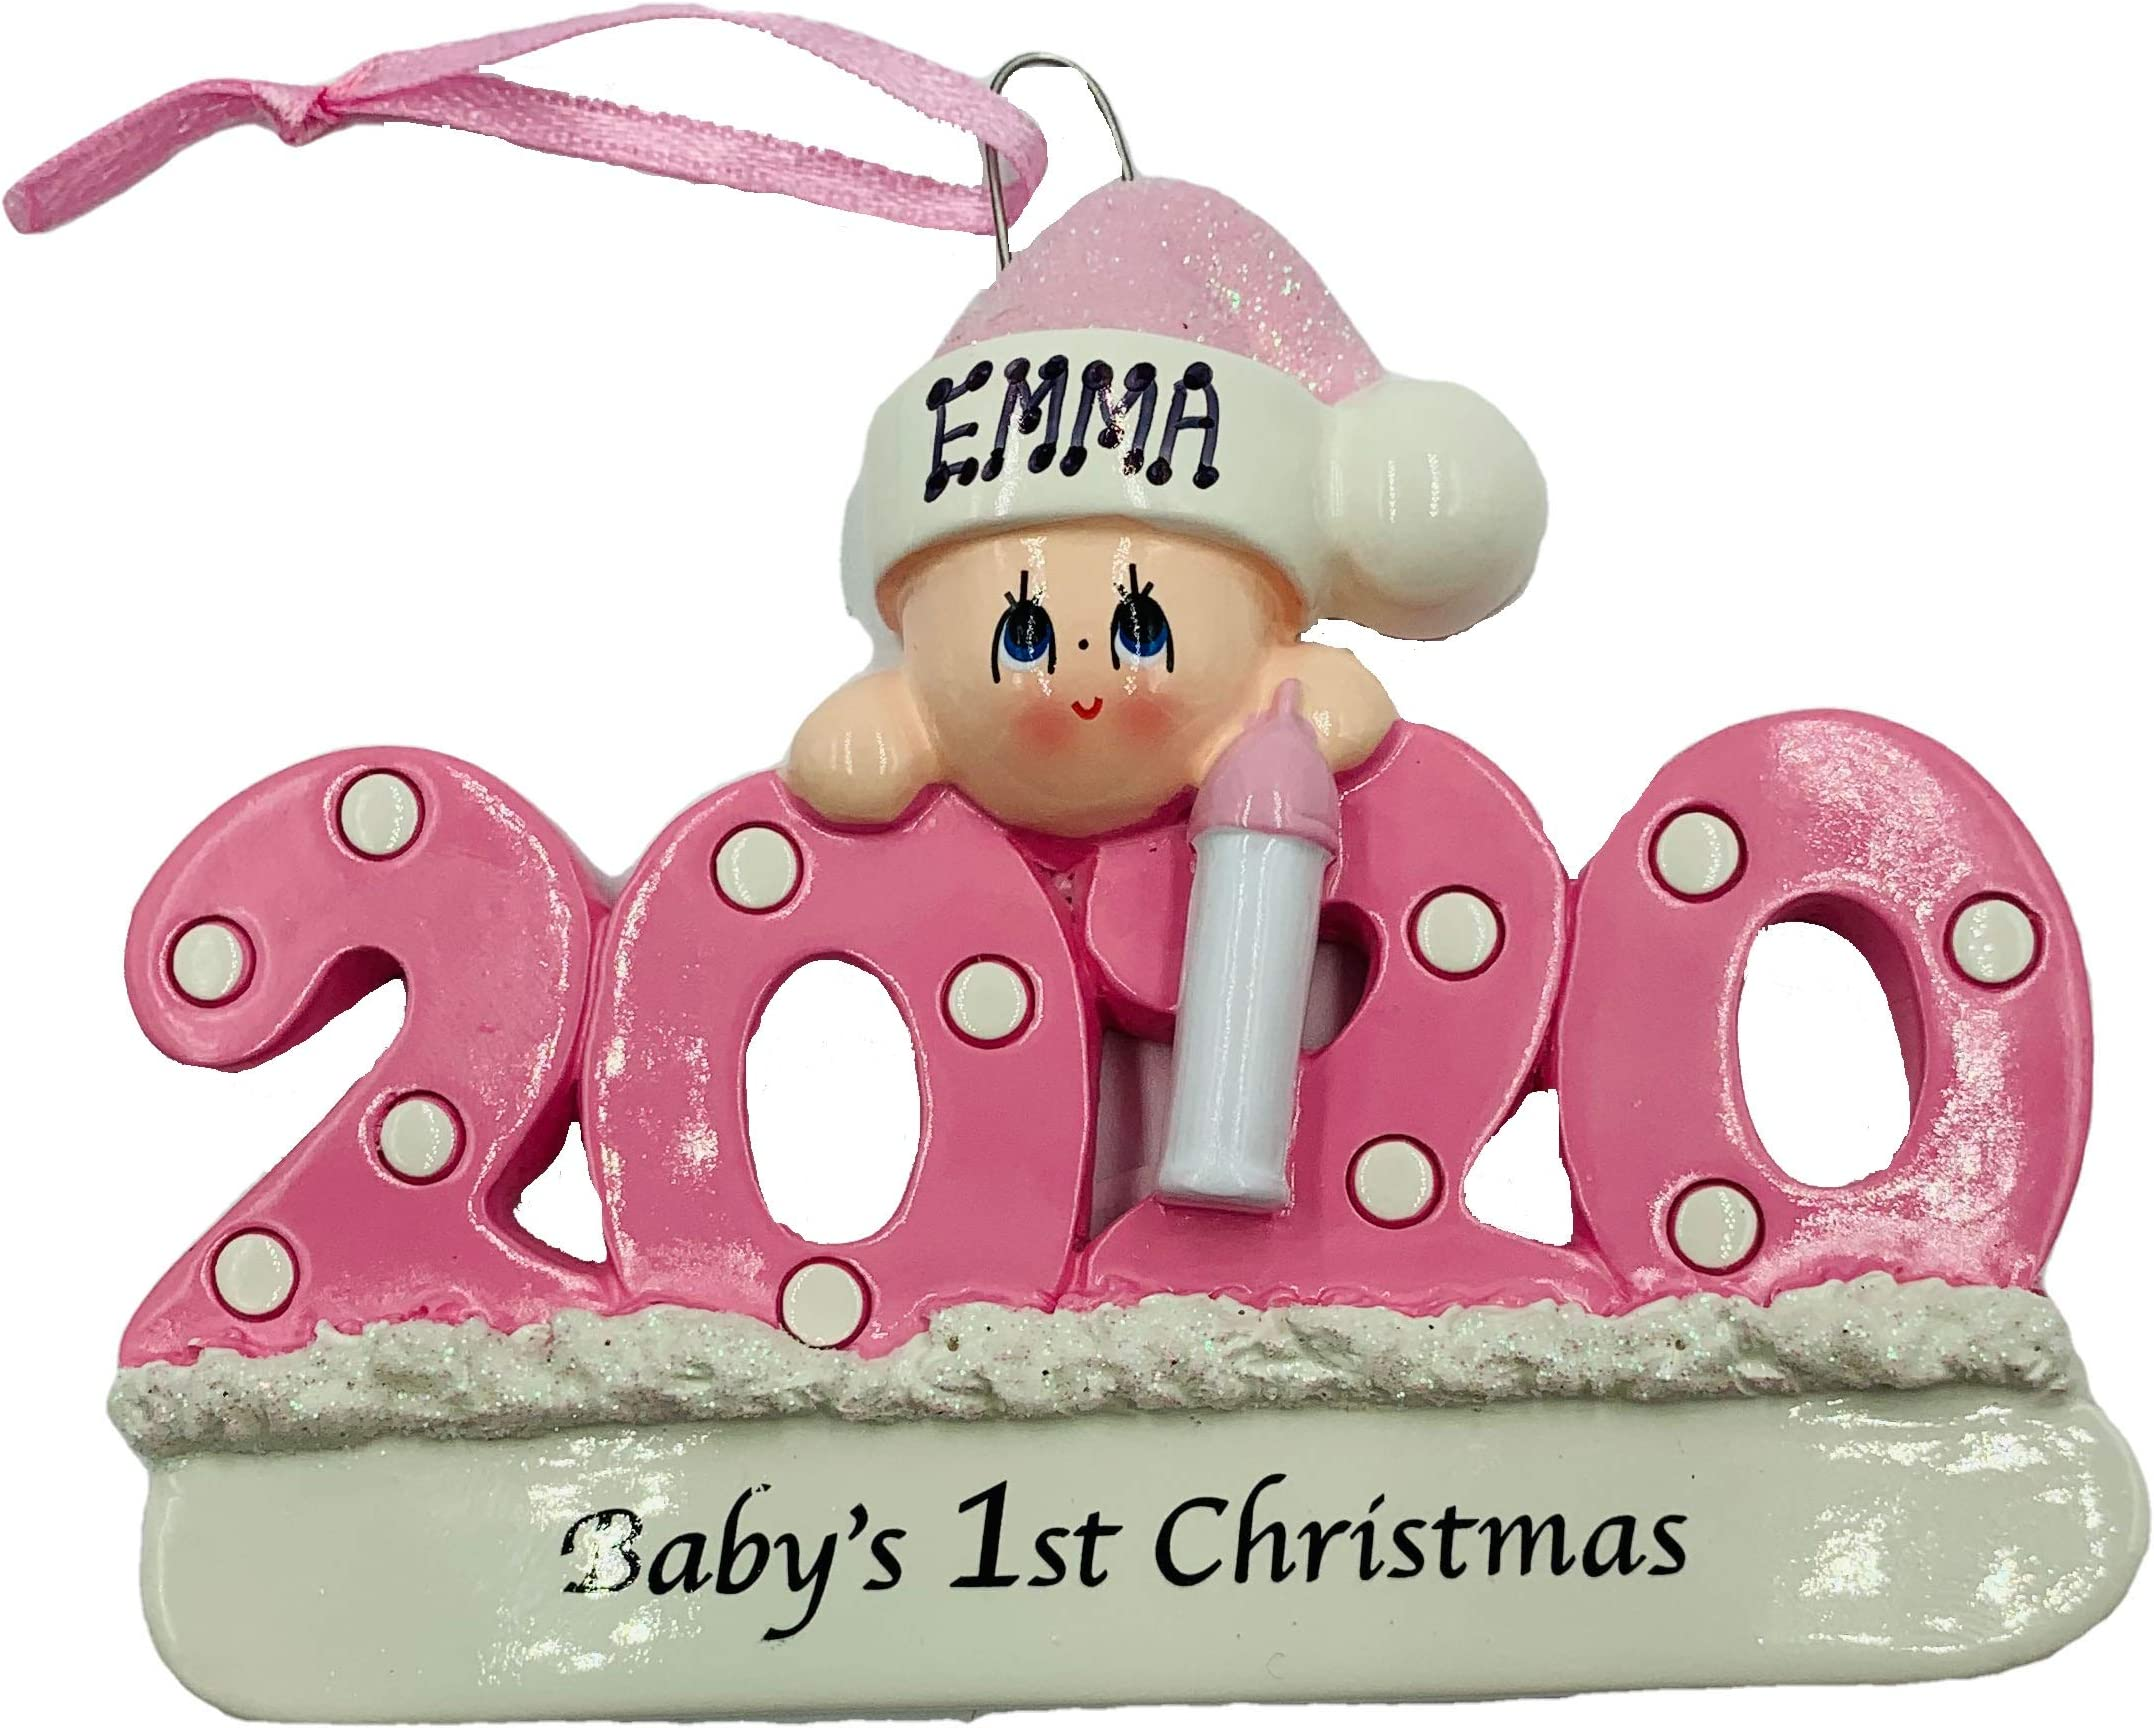 Baby/'s First Baby Boy Baby/'s 1st Gift Baby Girl Modern Personalized Name First Christmas Porcelain Ceramic Christmas Ornament Newborn